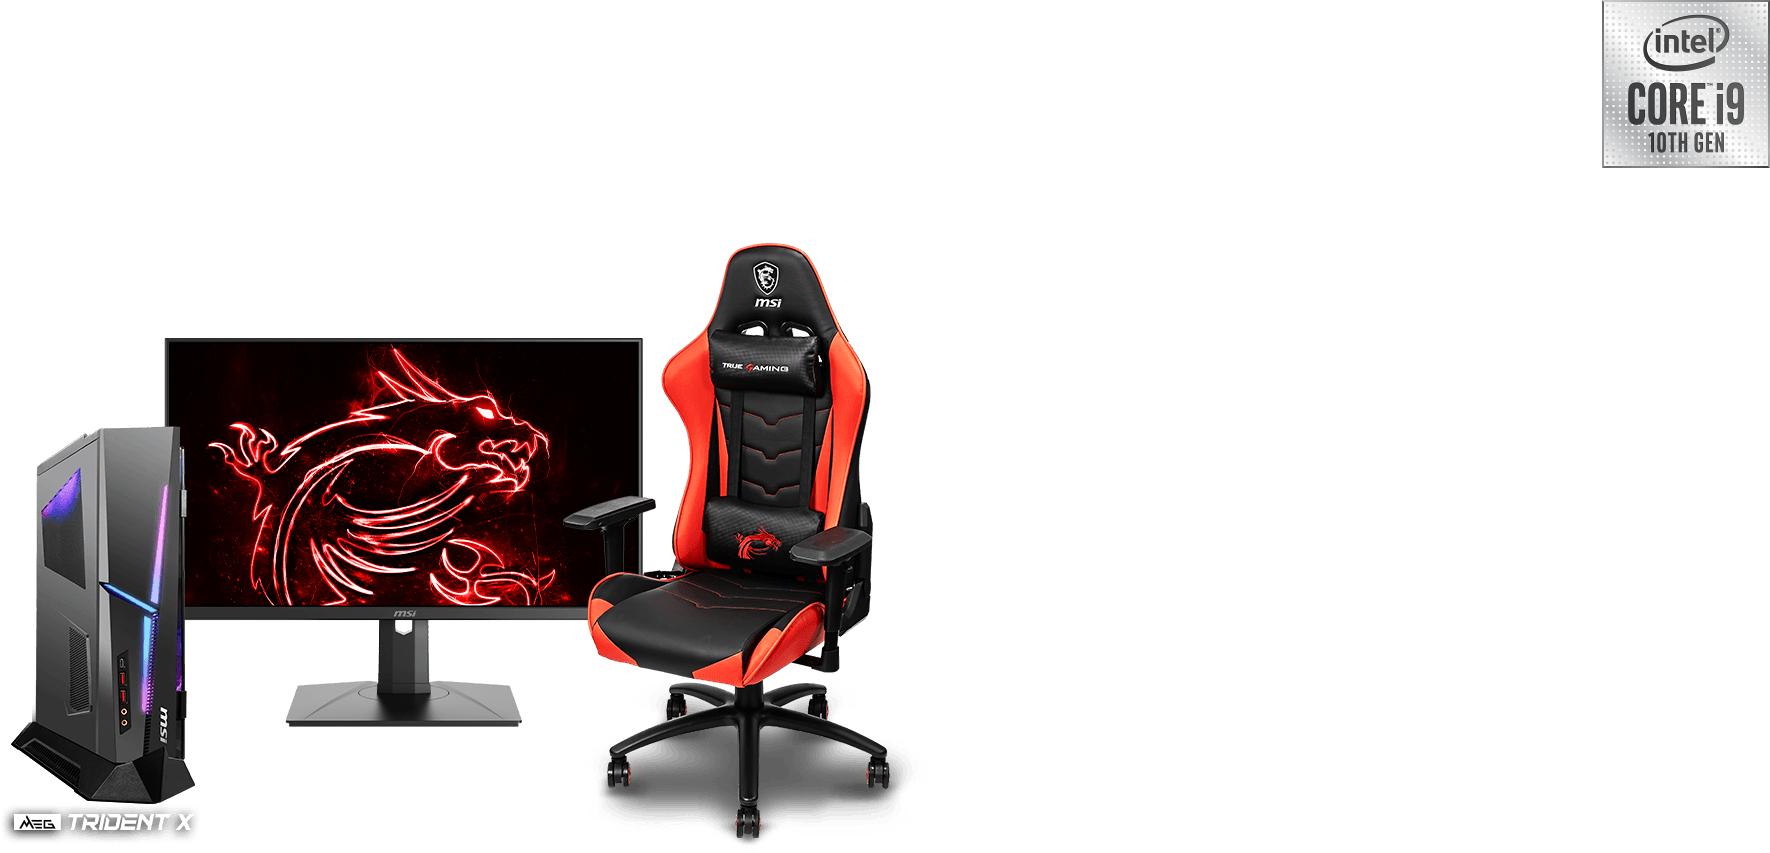 msi be fast promotion